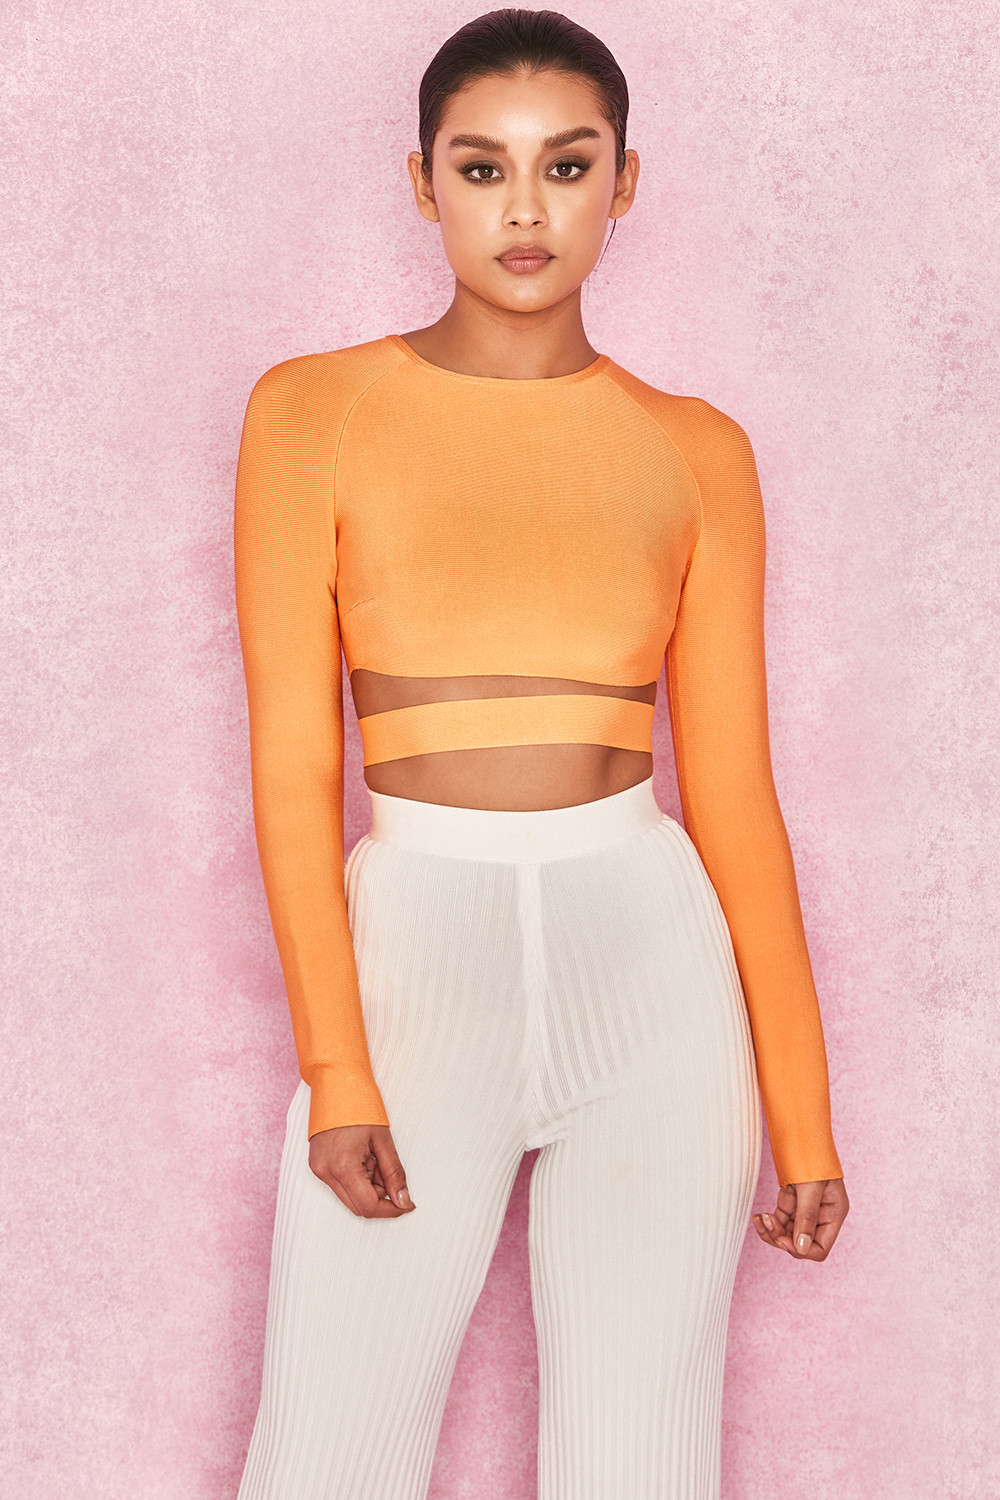 fec78c3f46682 Talika Neon Orange Bandage Crop Top with Waistband. View larger image. View  larger image. View larger image. View larger image. View larger image